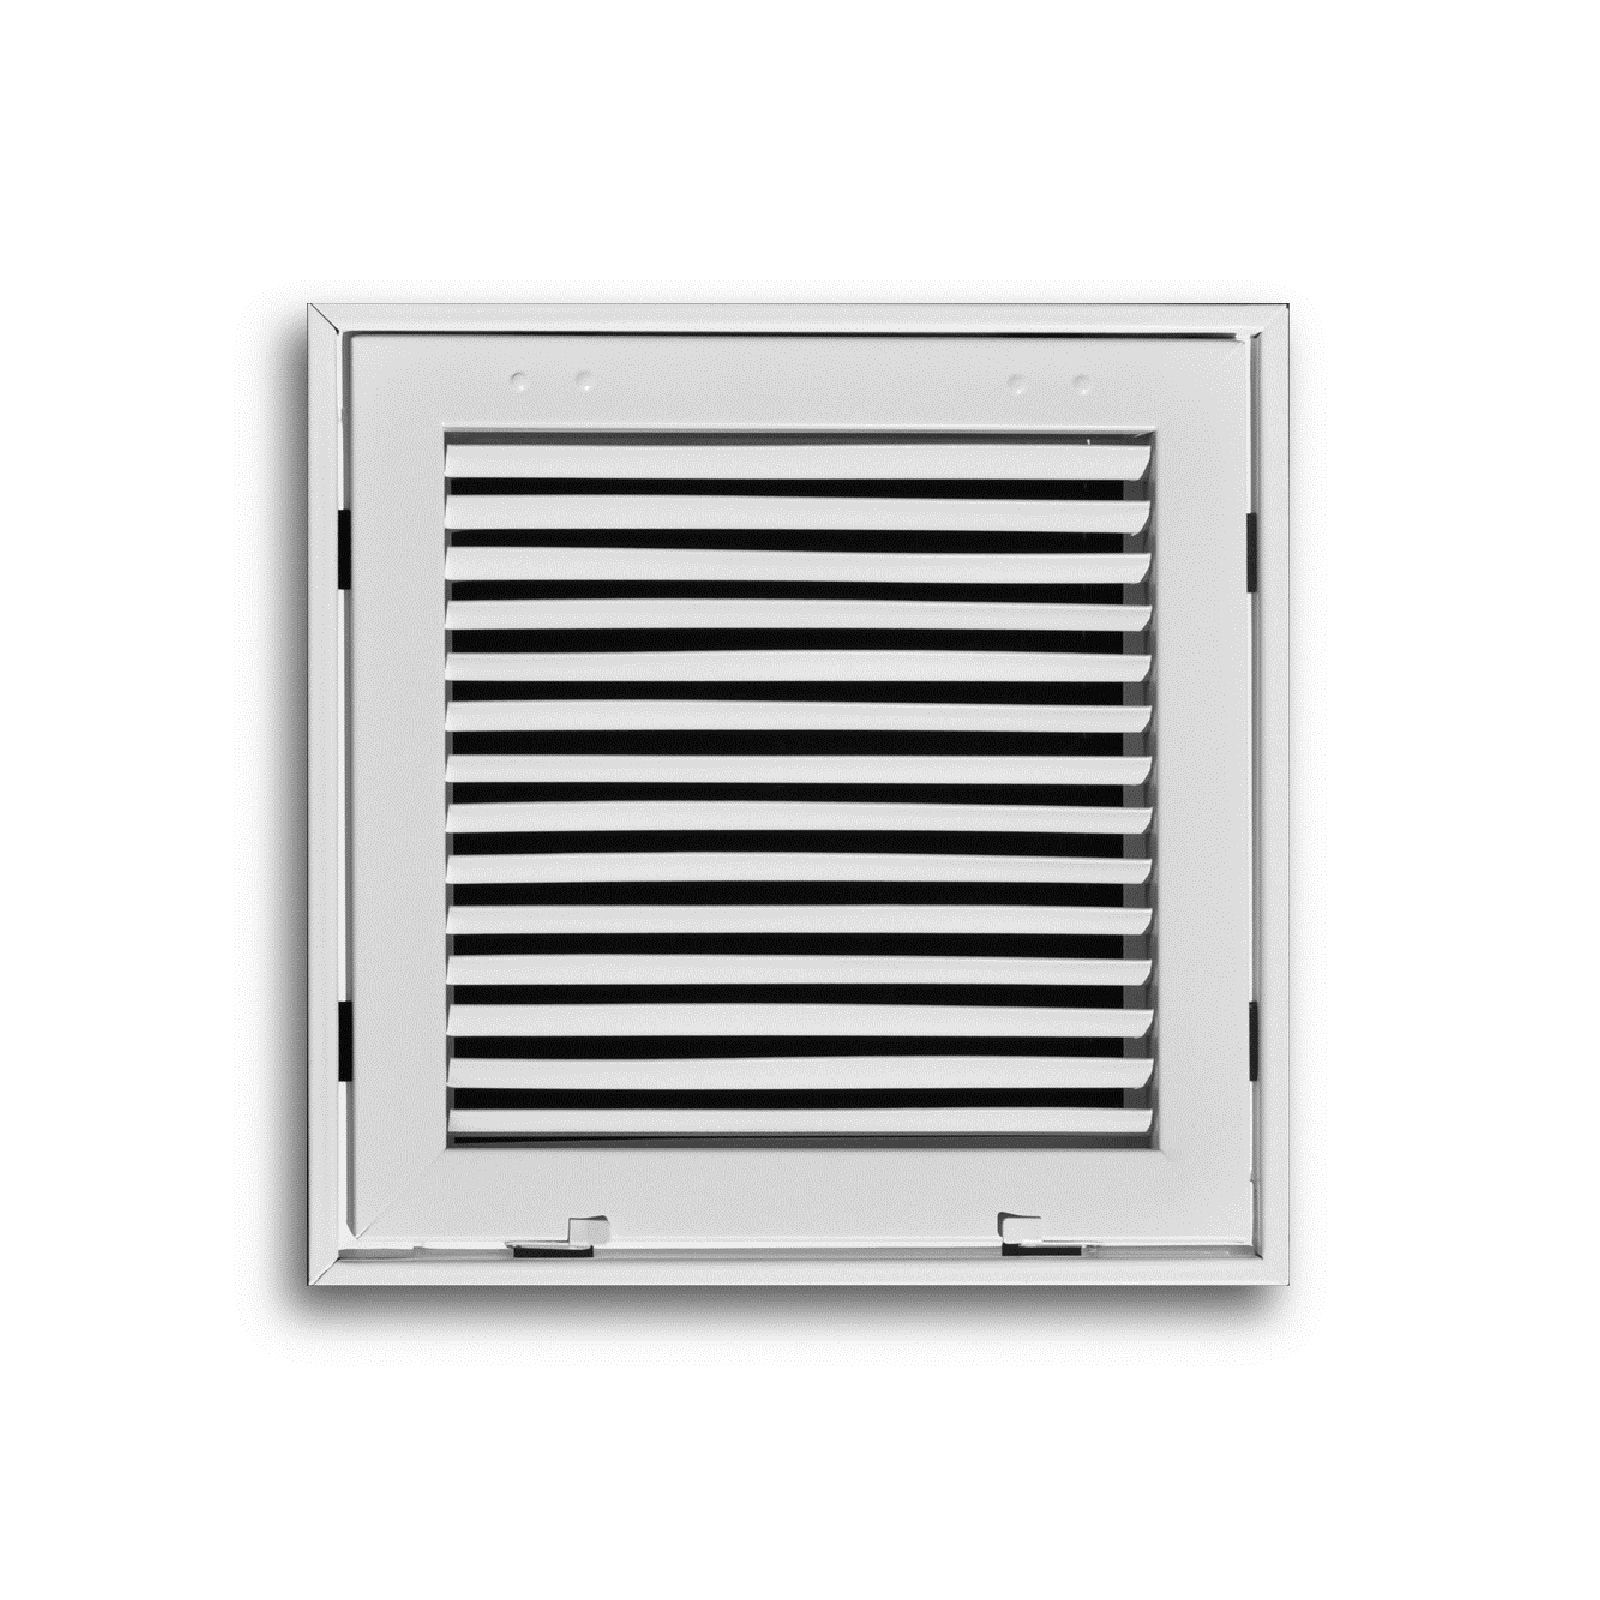 "TRUaire 290 14X14 - Steel Fixed Bar Return Air Filter Grille, White, 14"" X 14"""